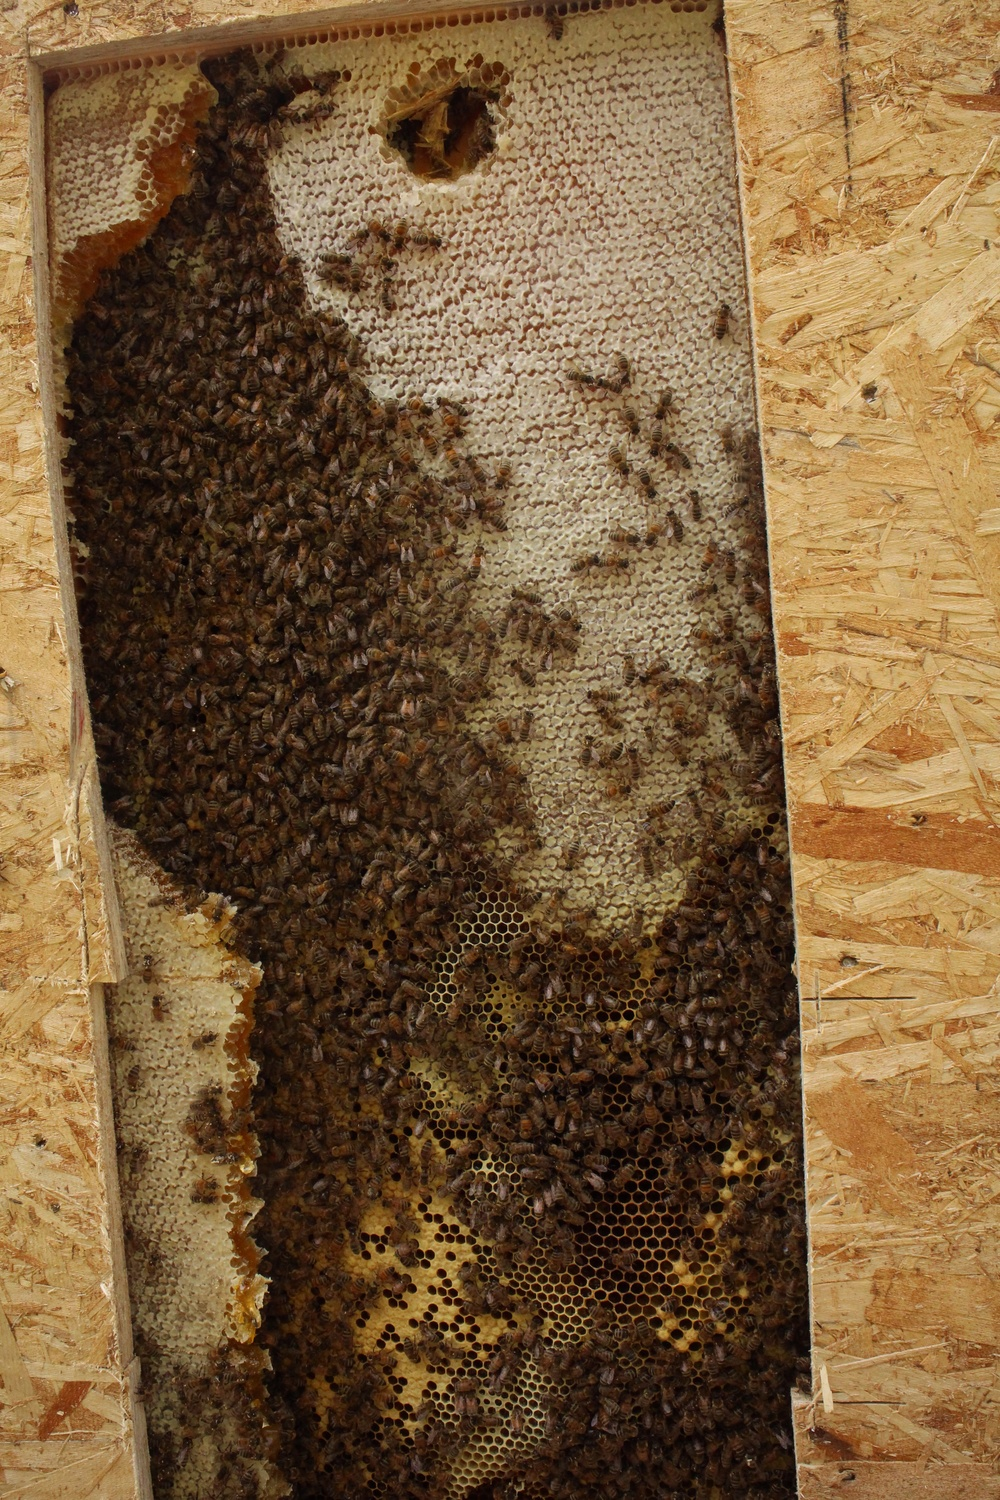 This is really cool.  The bees covering the top left corner and through the center are nurse bees, and beneath them you can see a bit of the worker brood, made of eggs and larvae.  The light yellow cells are capped larvae that are pupating into adult bees.  On the outside edge of the brood comb, on the lower right corner the cells are puffed out, and those are capped drone larvae.  Drones are the  male honeybees.